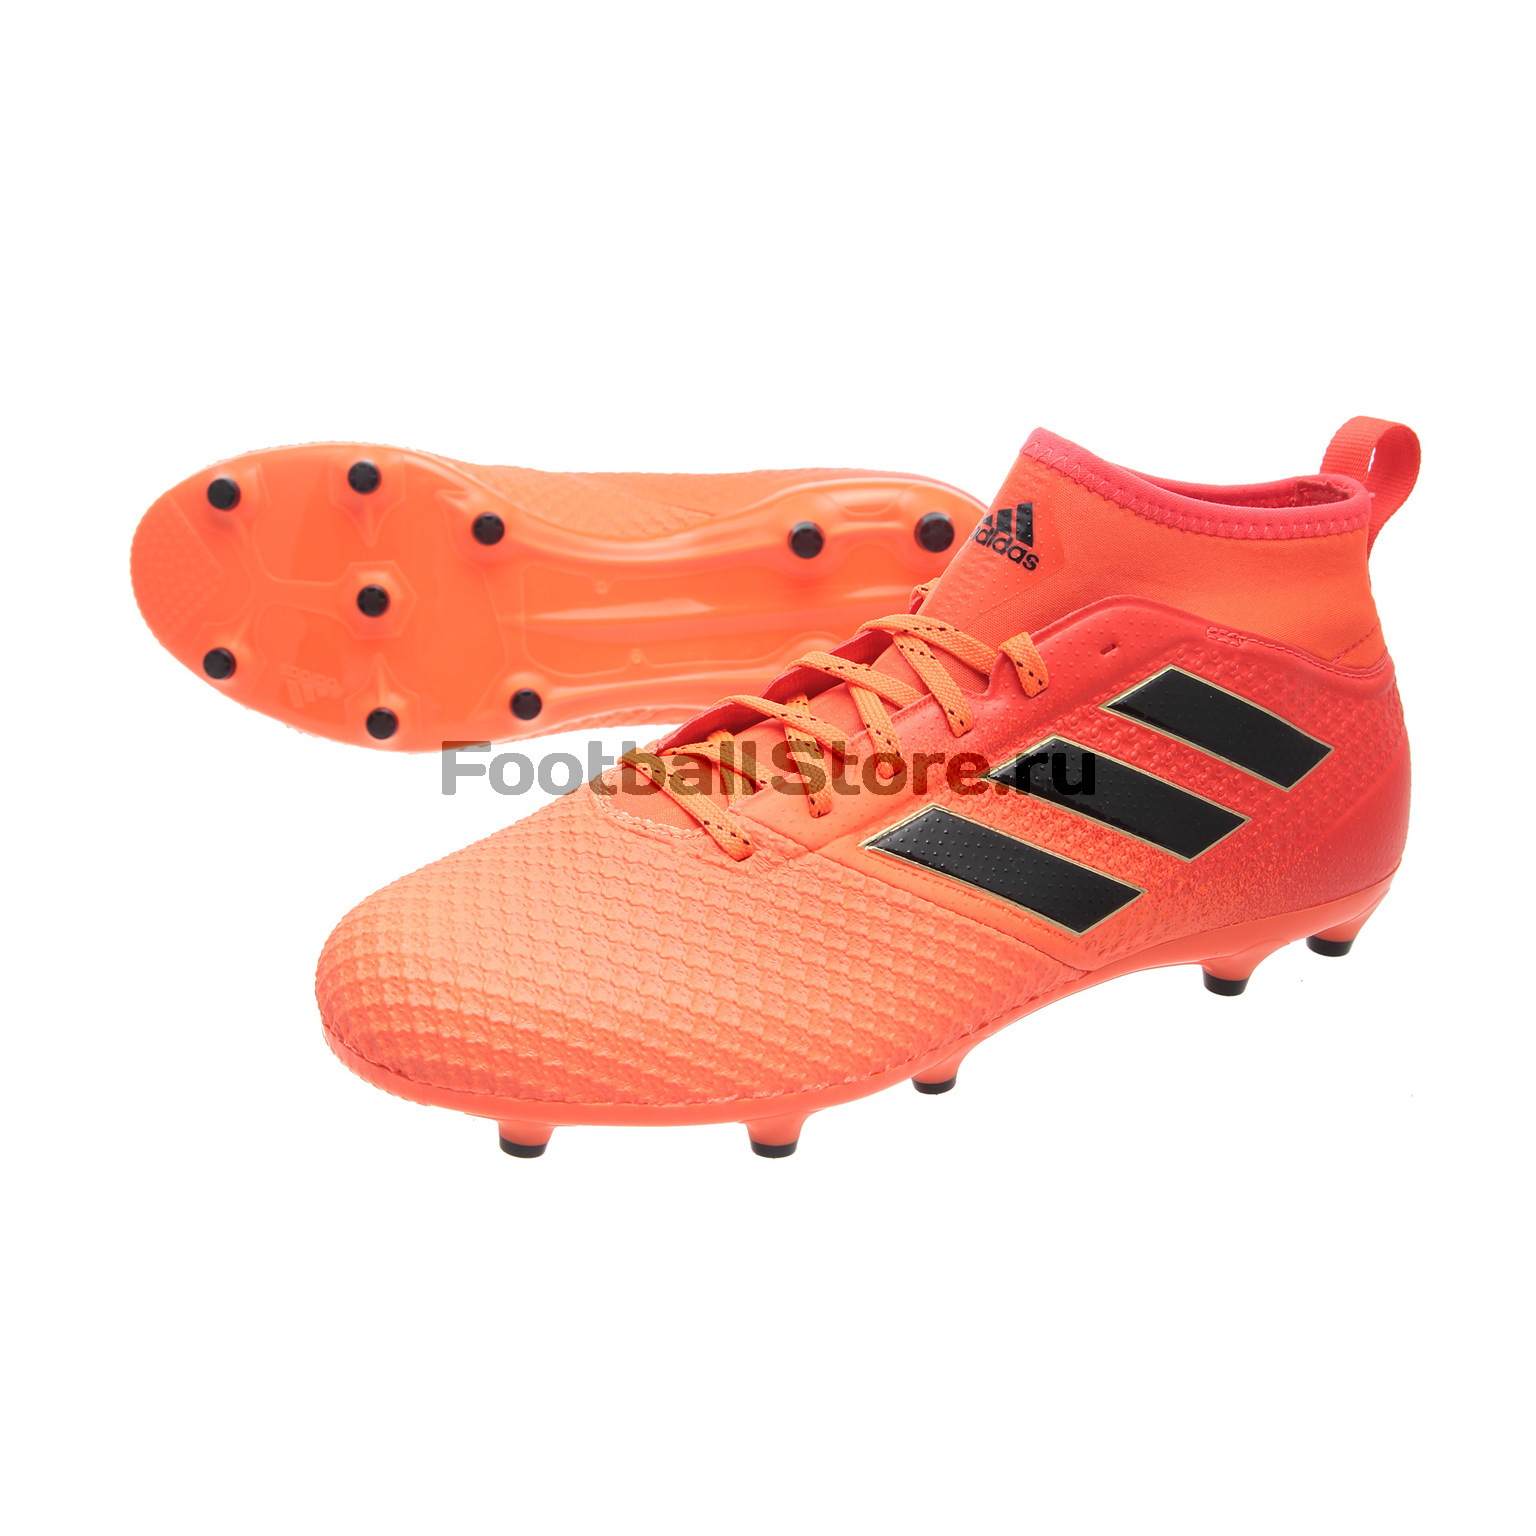 Игровые бутсы Adidas Бутсы Adidas Ace 17.3 FG S77065 парка loading 5203 dark navy 09311 22 50 xl